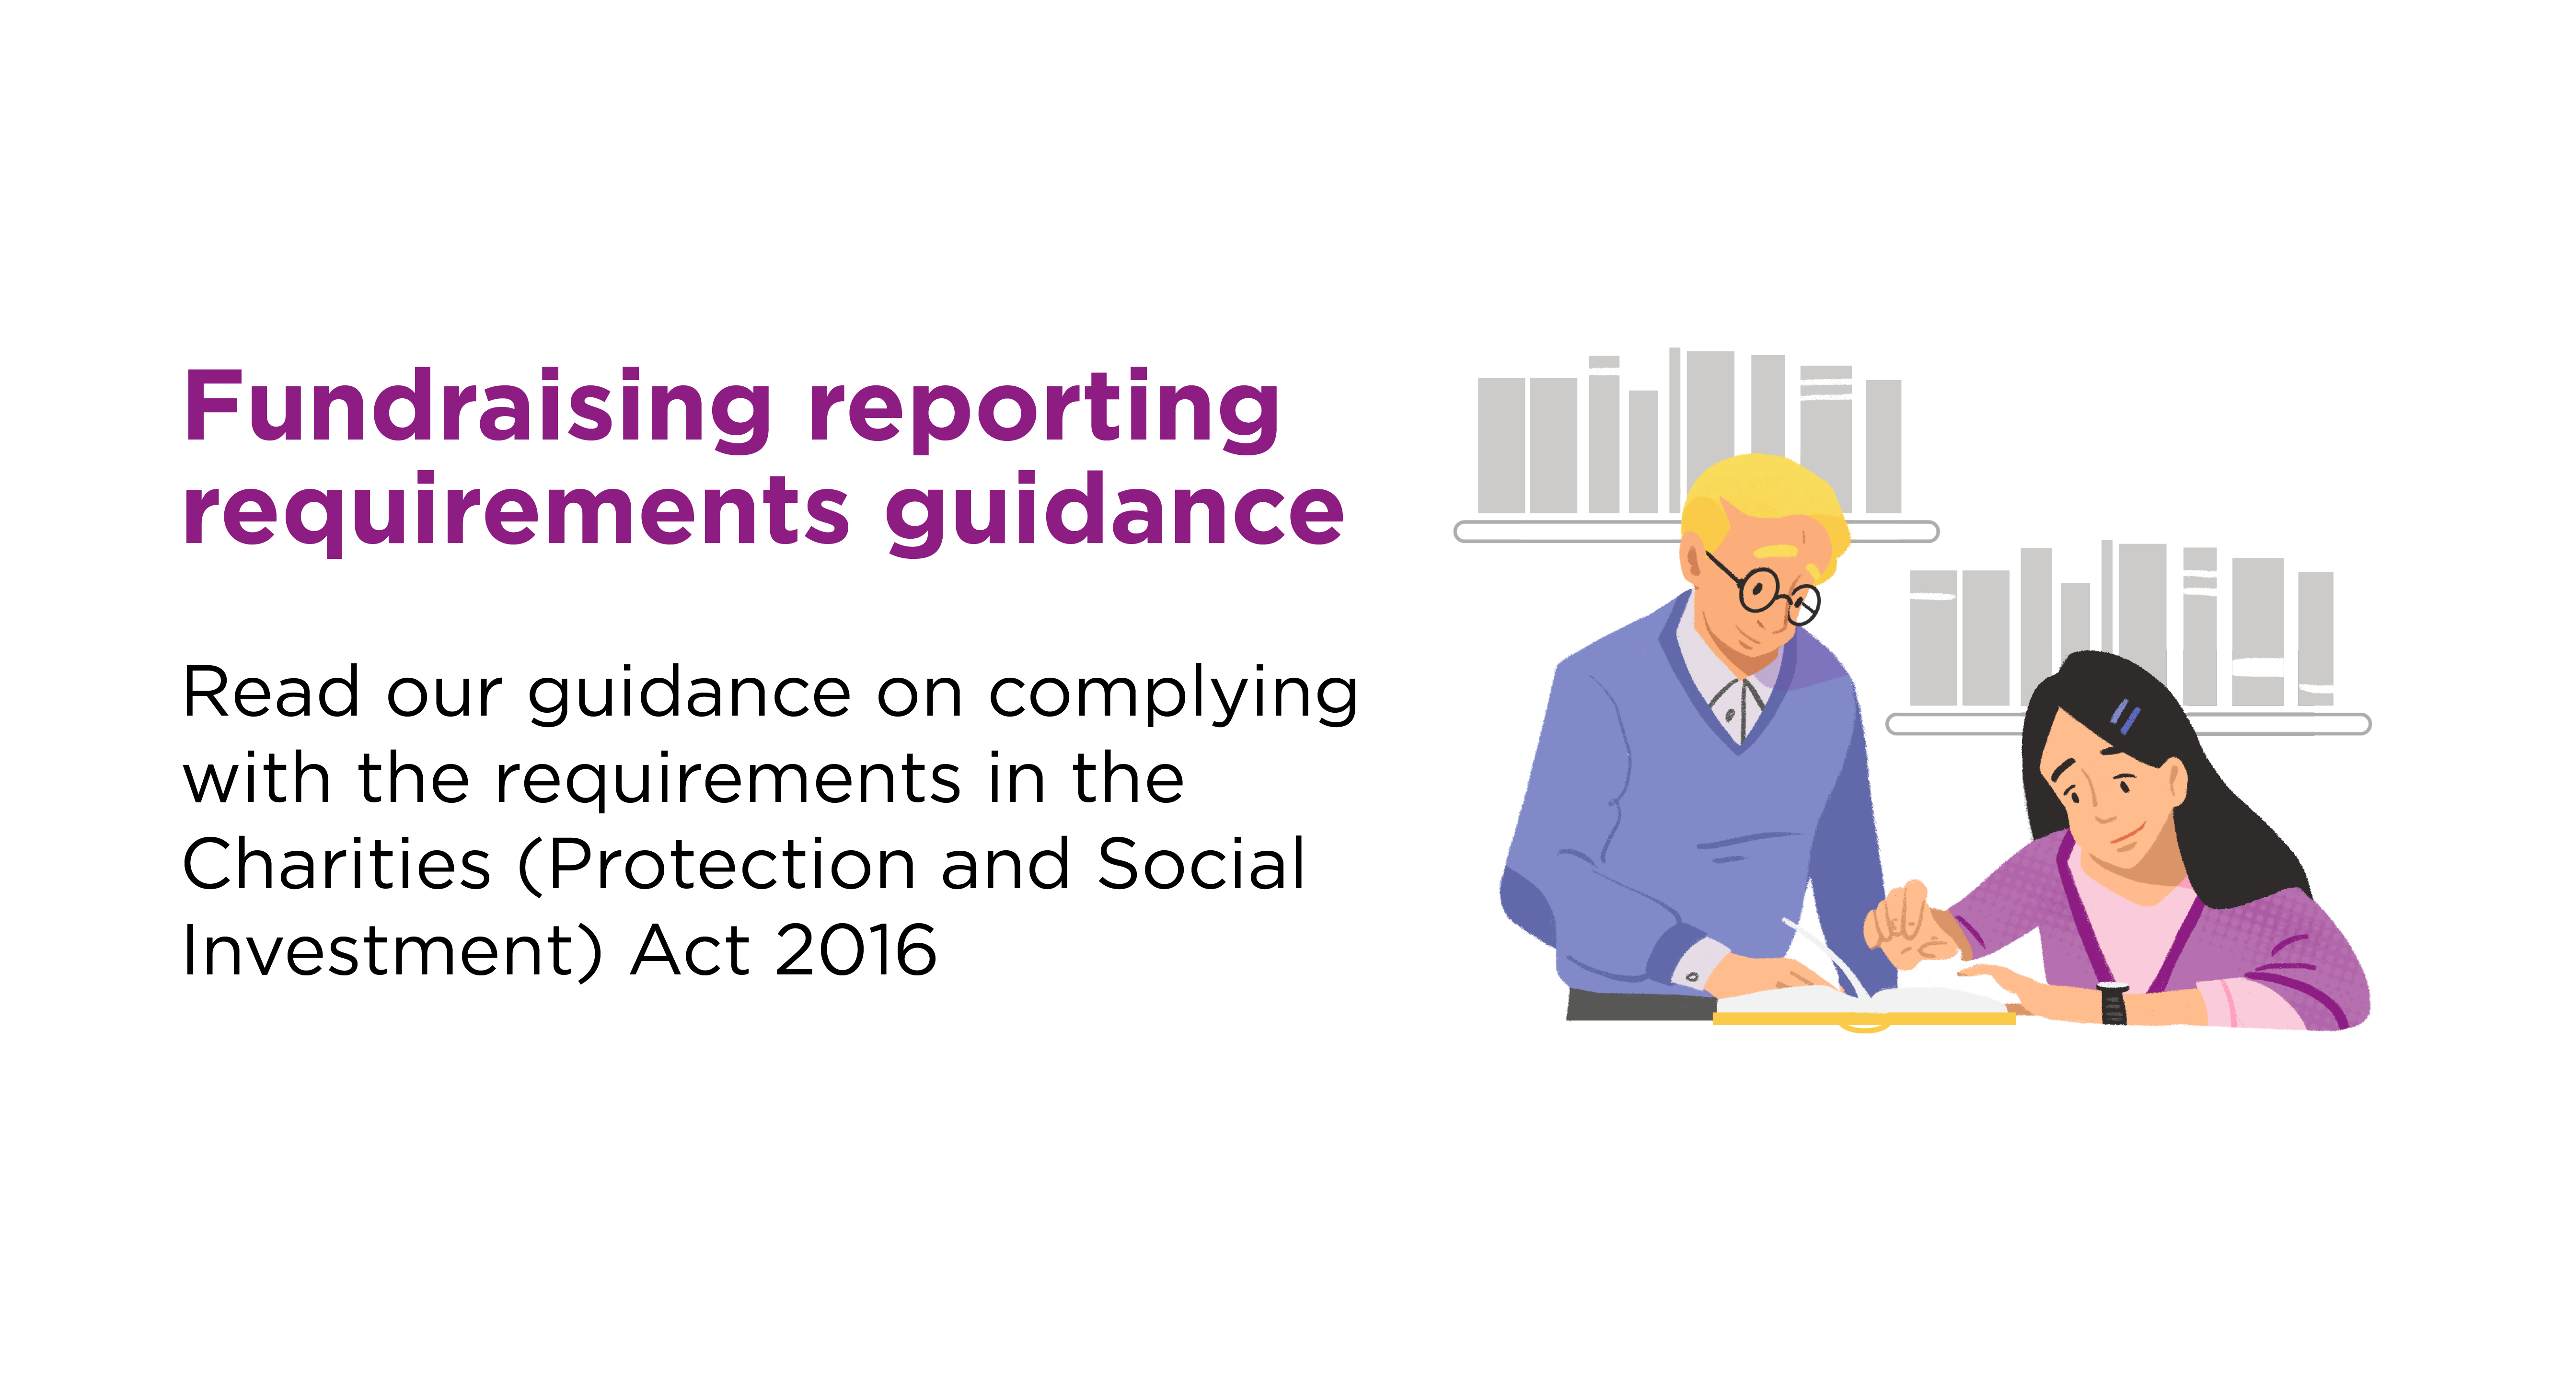 Read our guidance on complying with the requirements in the Charities (Protection and Social Investment) Act 2016